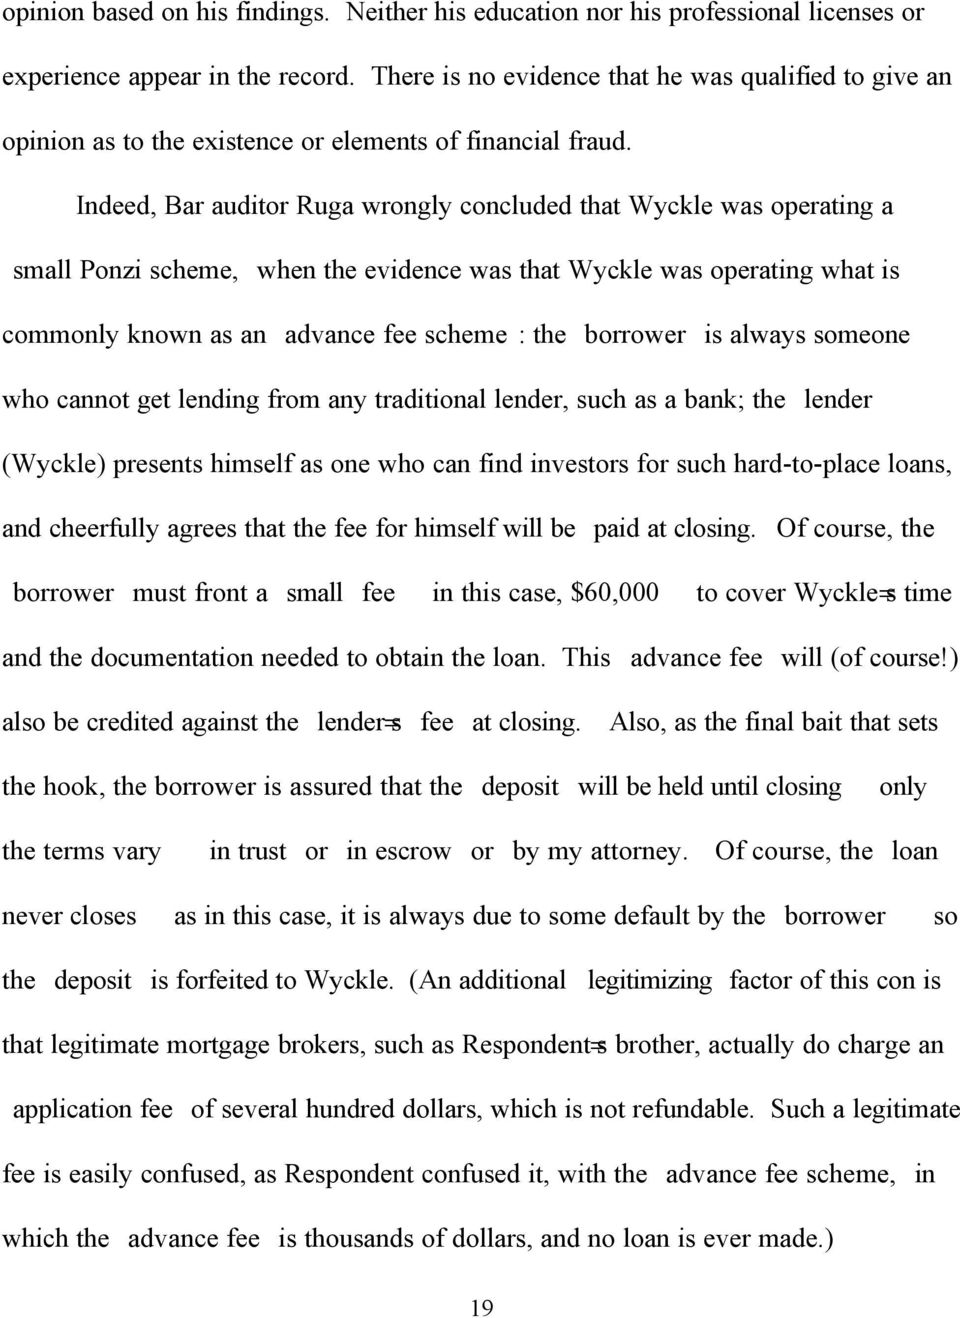 Indeed, Bar auditor Ruga wrongly concluded that Wyckle was operating a Asmall Ponzi scheme,@ when the evidence was that Wyckle was operating what is commonly known as an Aadvance fee scheme@: the